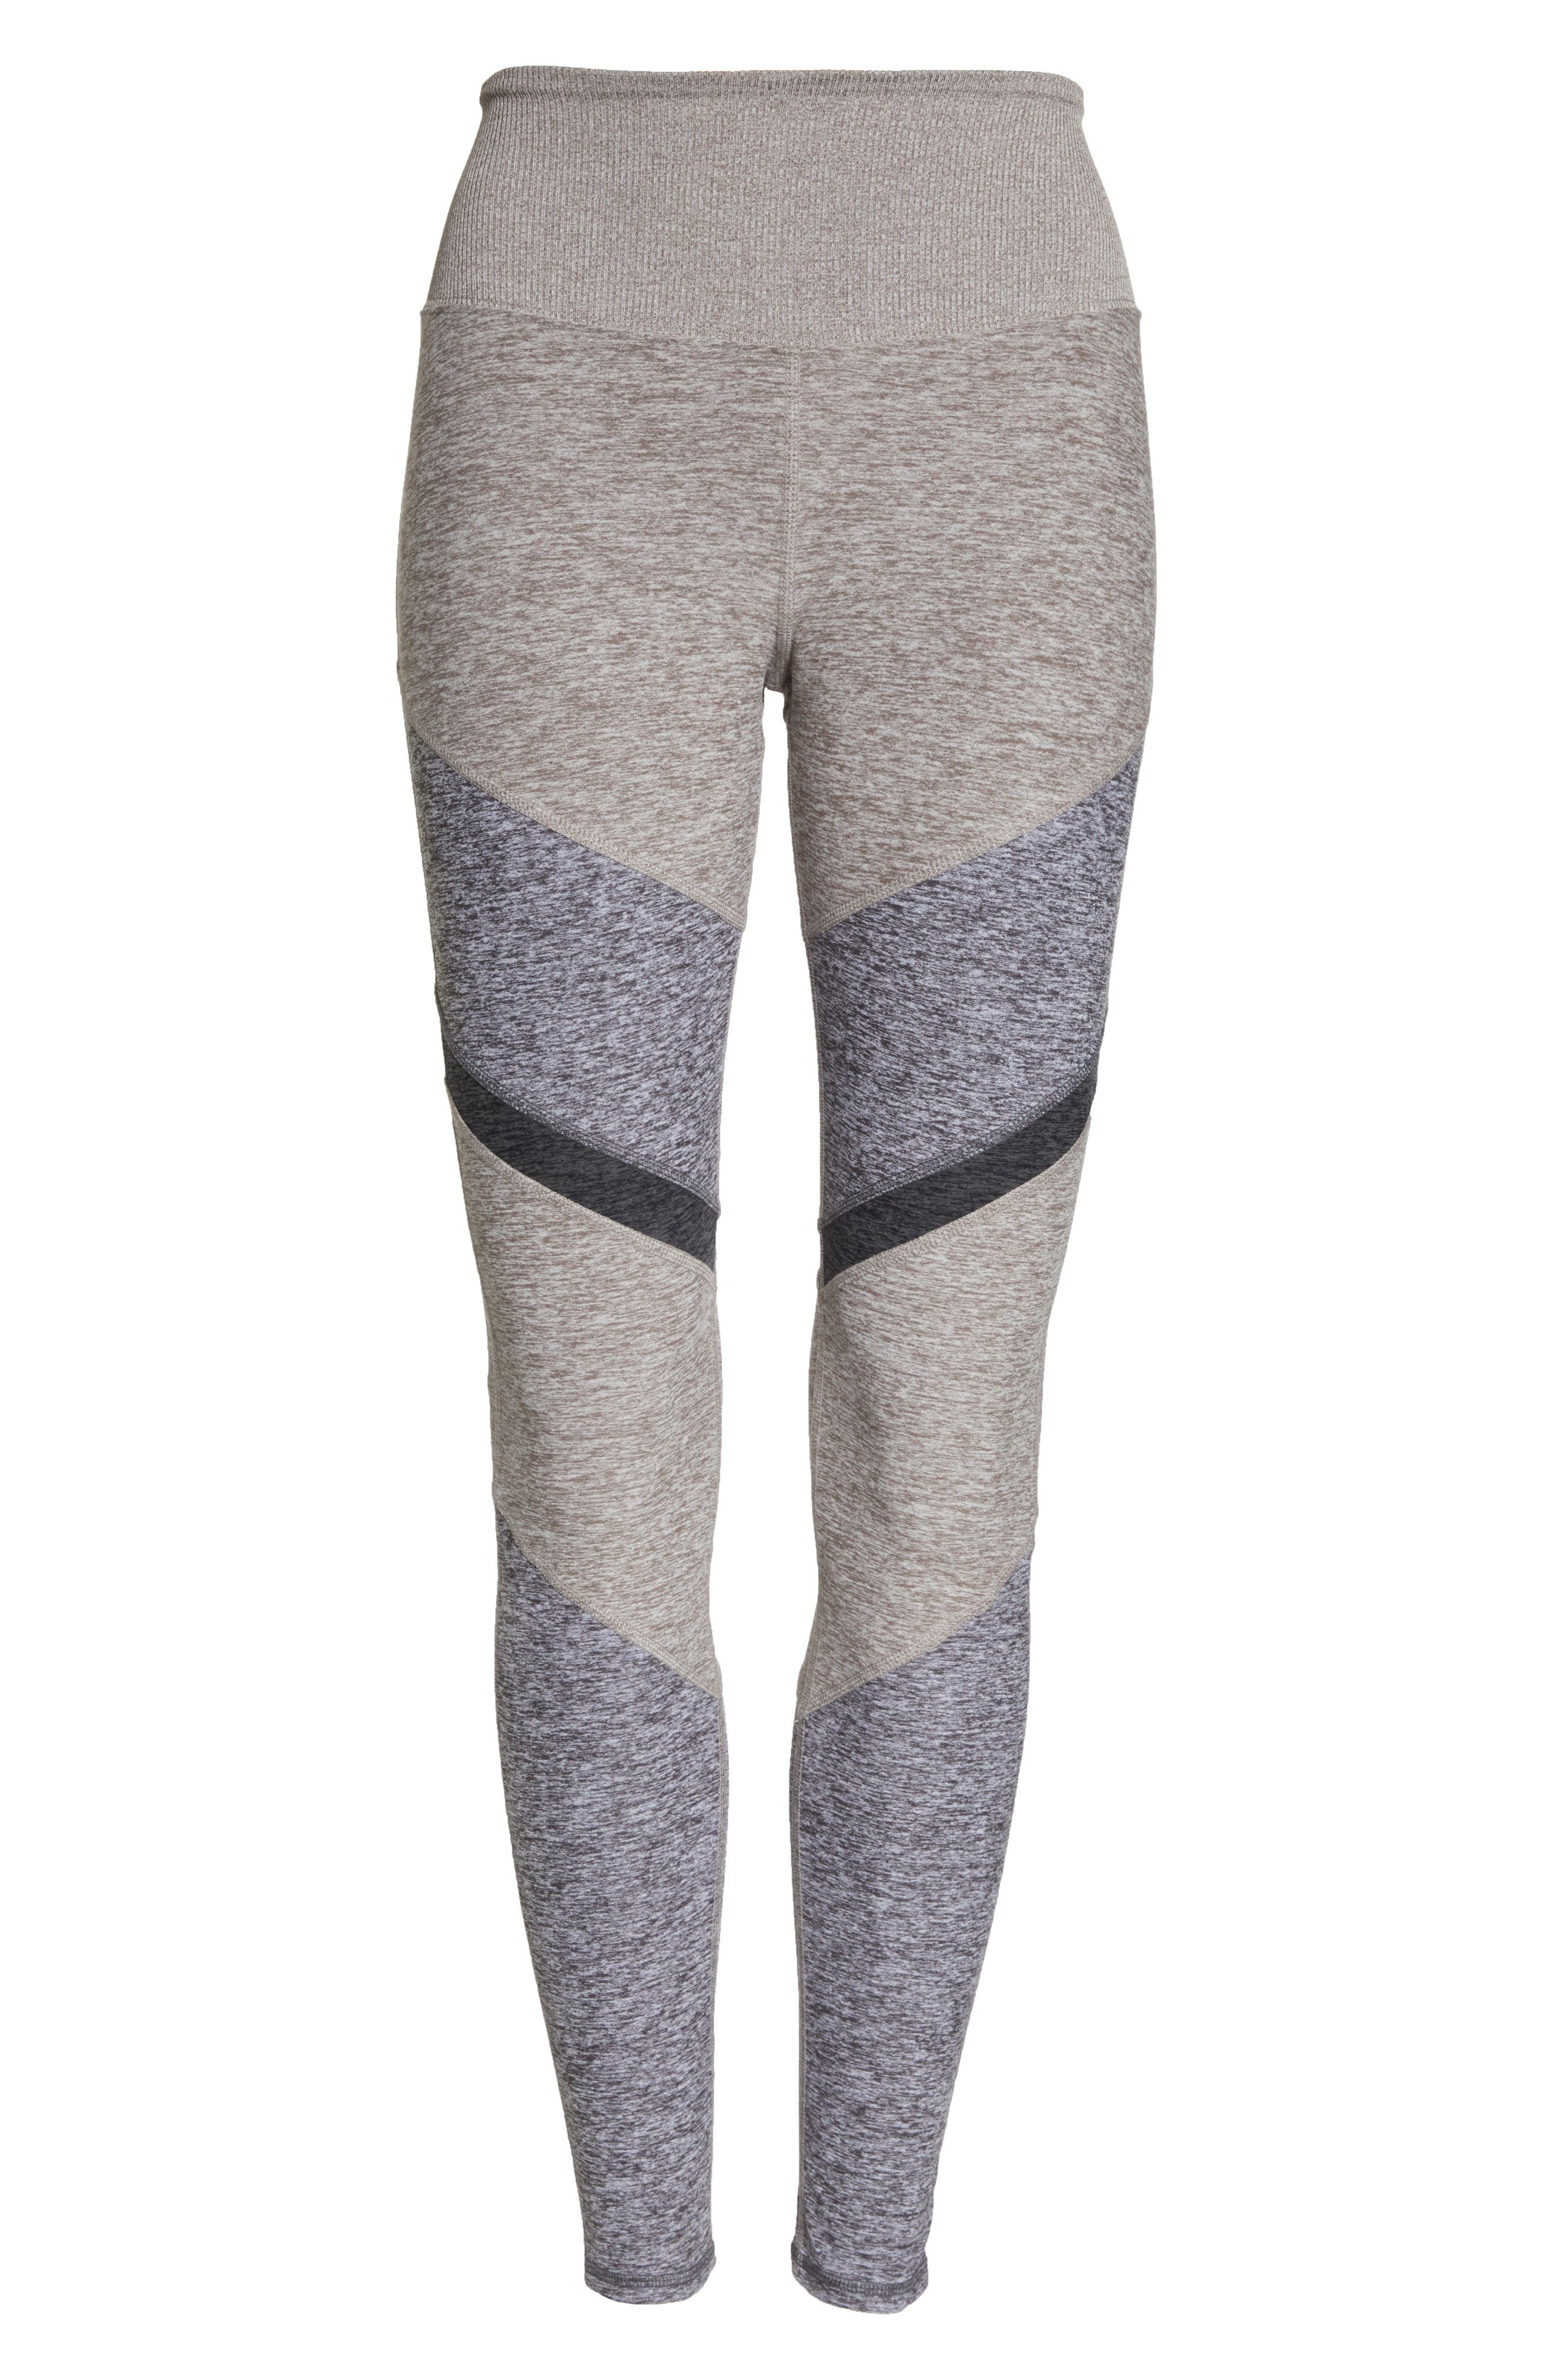 ALO, Sheila Alosoft High Waist Leggings, Alternate thumbnail 7, color, GRAVEL HEATHER/ DOVE GREY